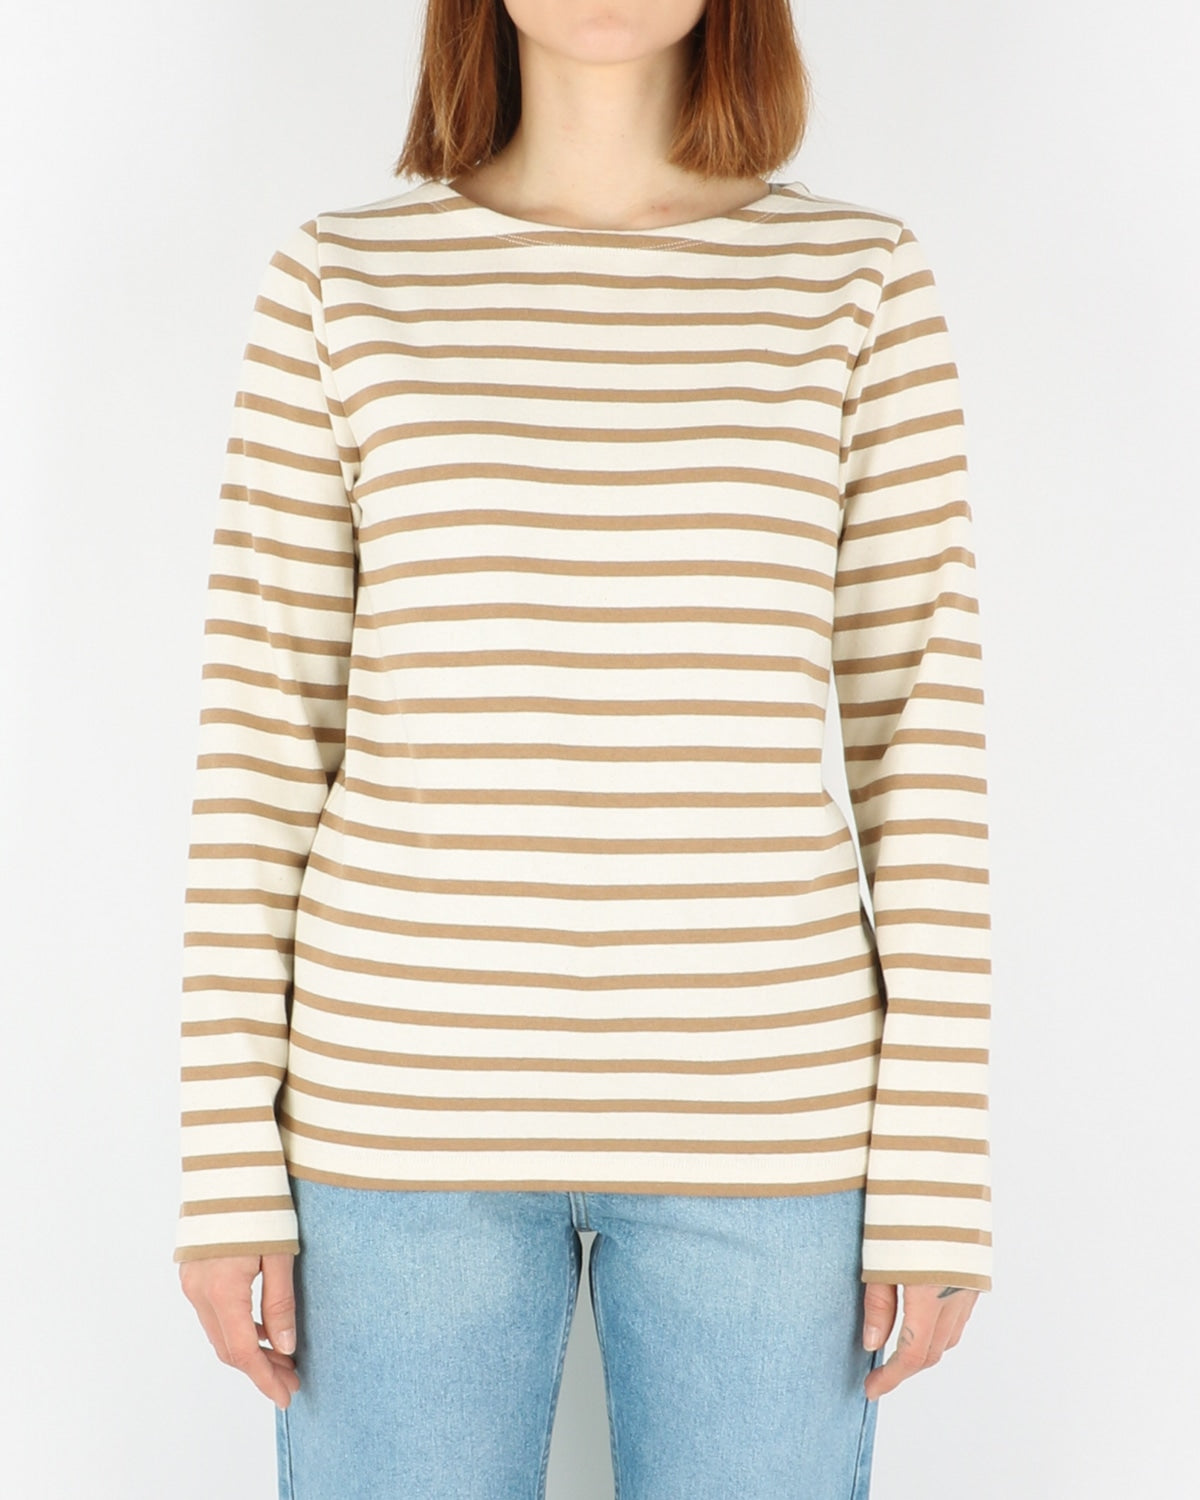 norse projects_inge classic stripe sweatshirt_camel_view_1_3